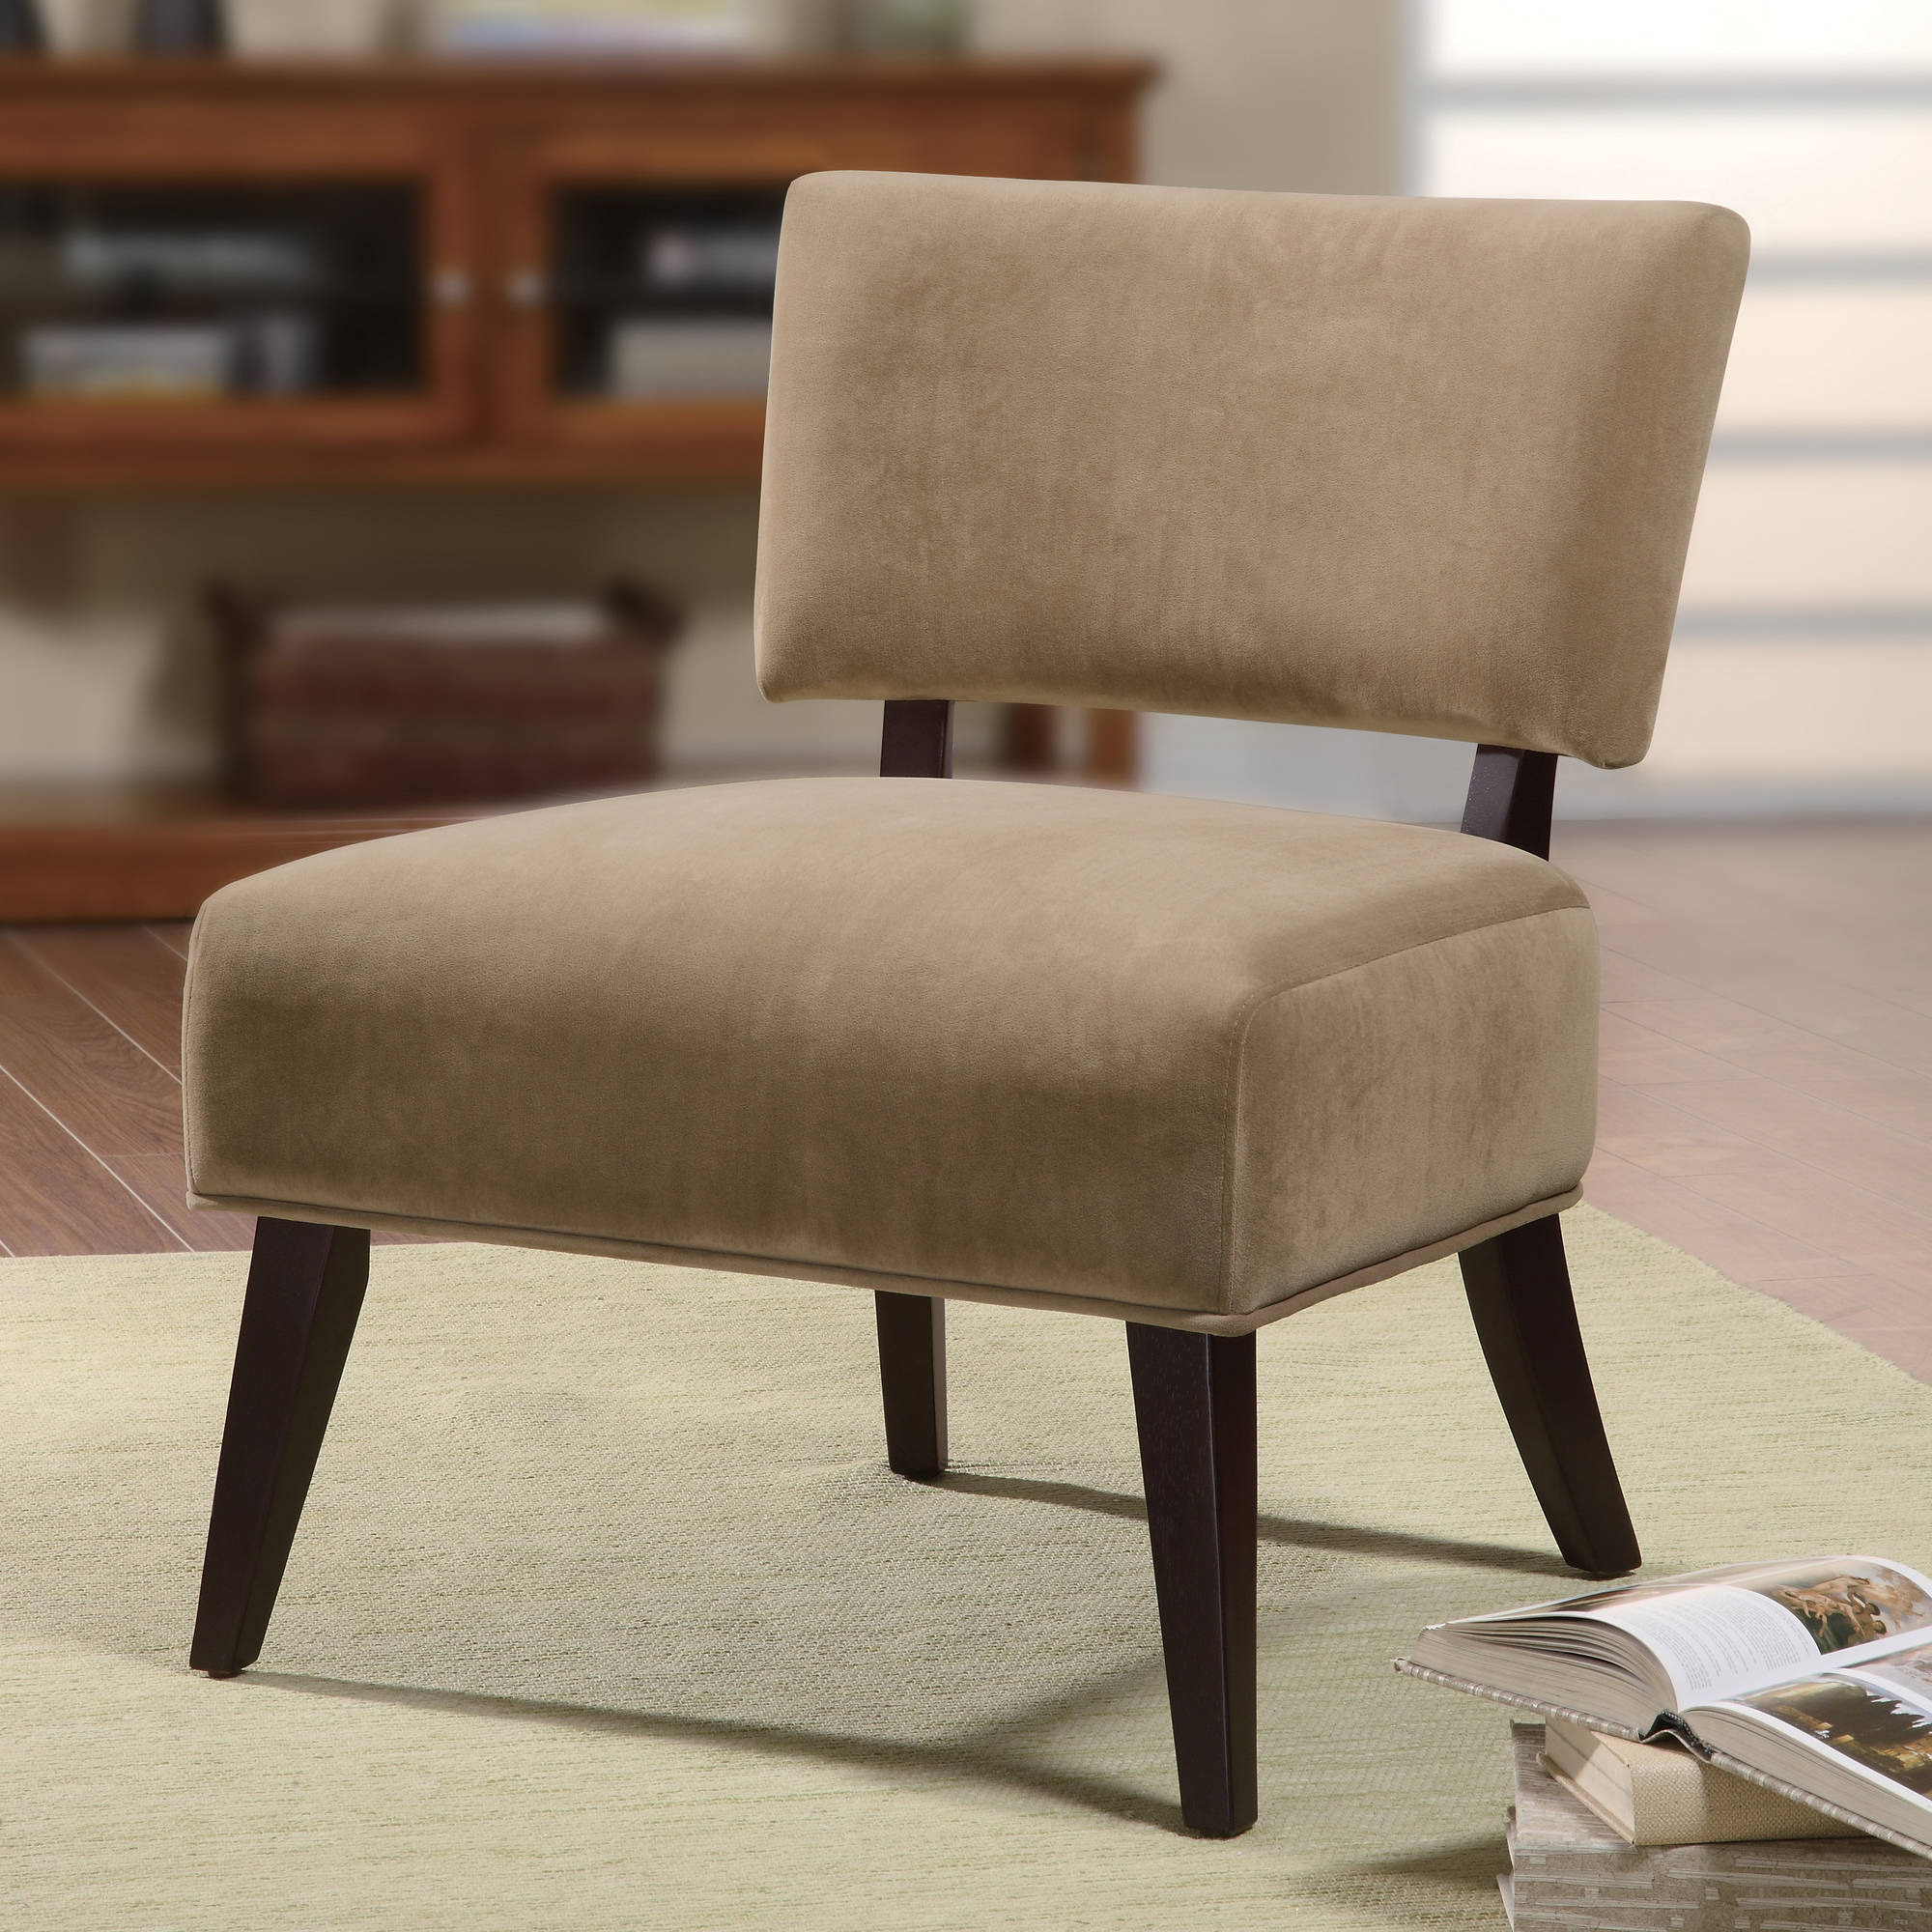 Oversized Accent Chair Tan Walmart